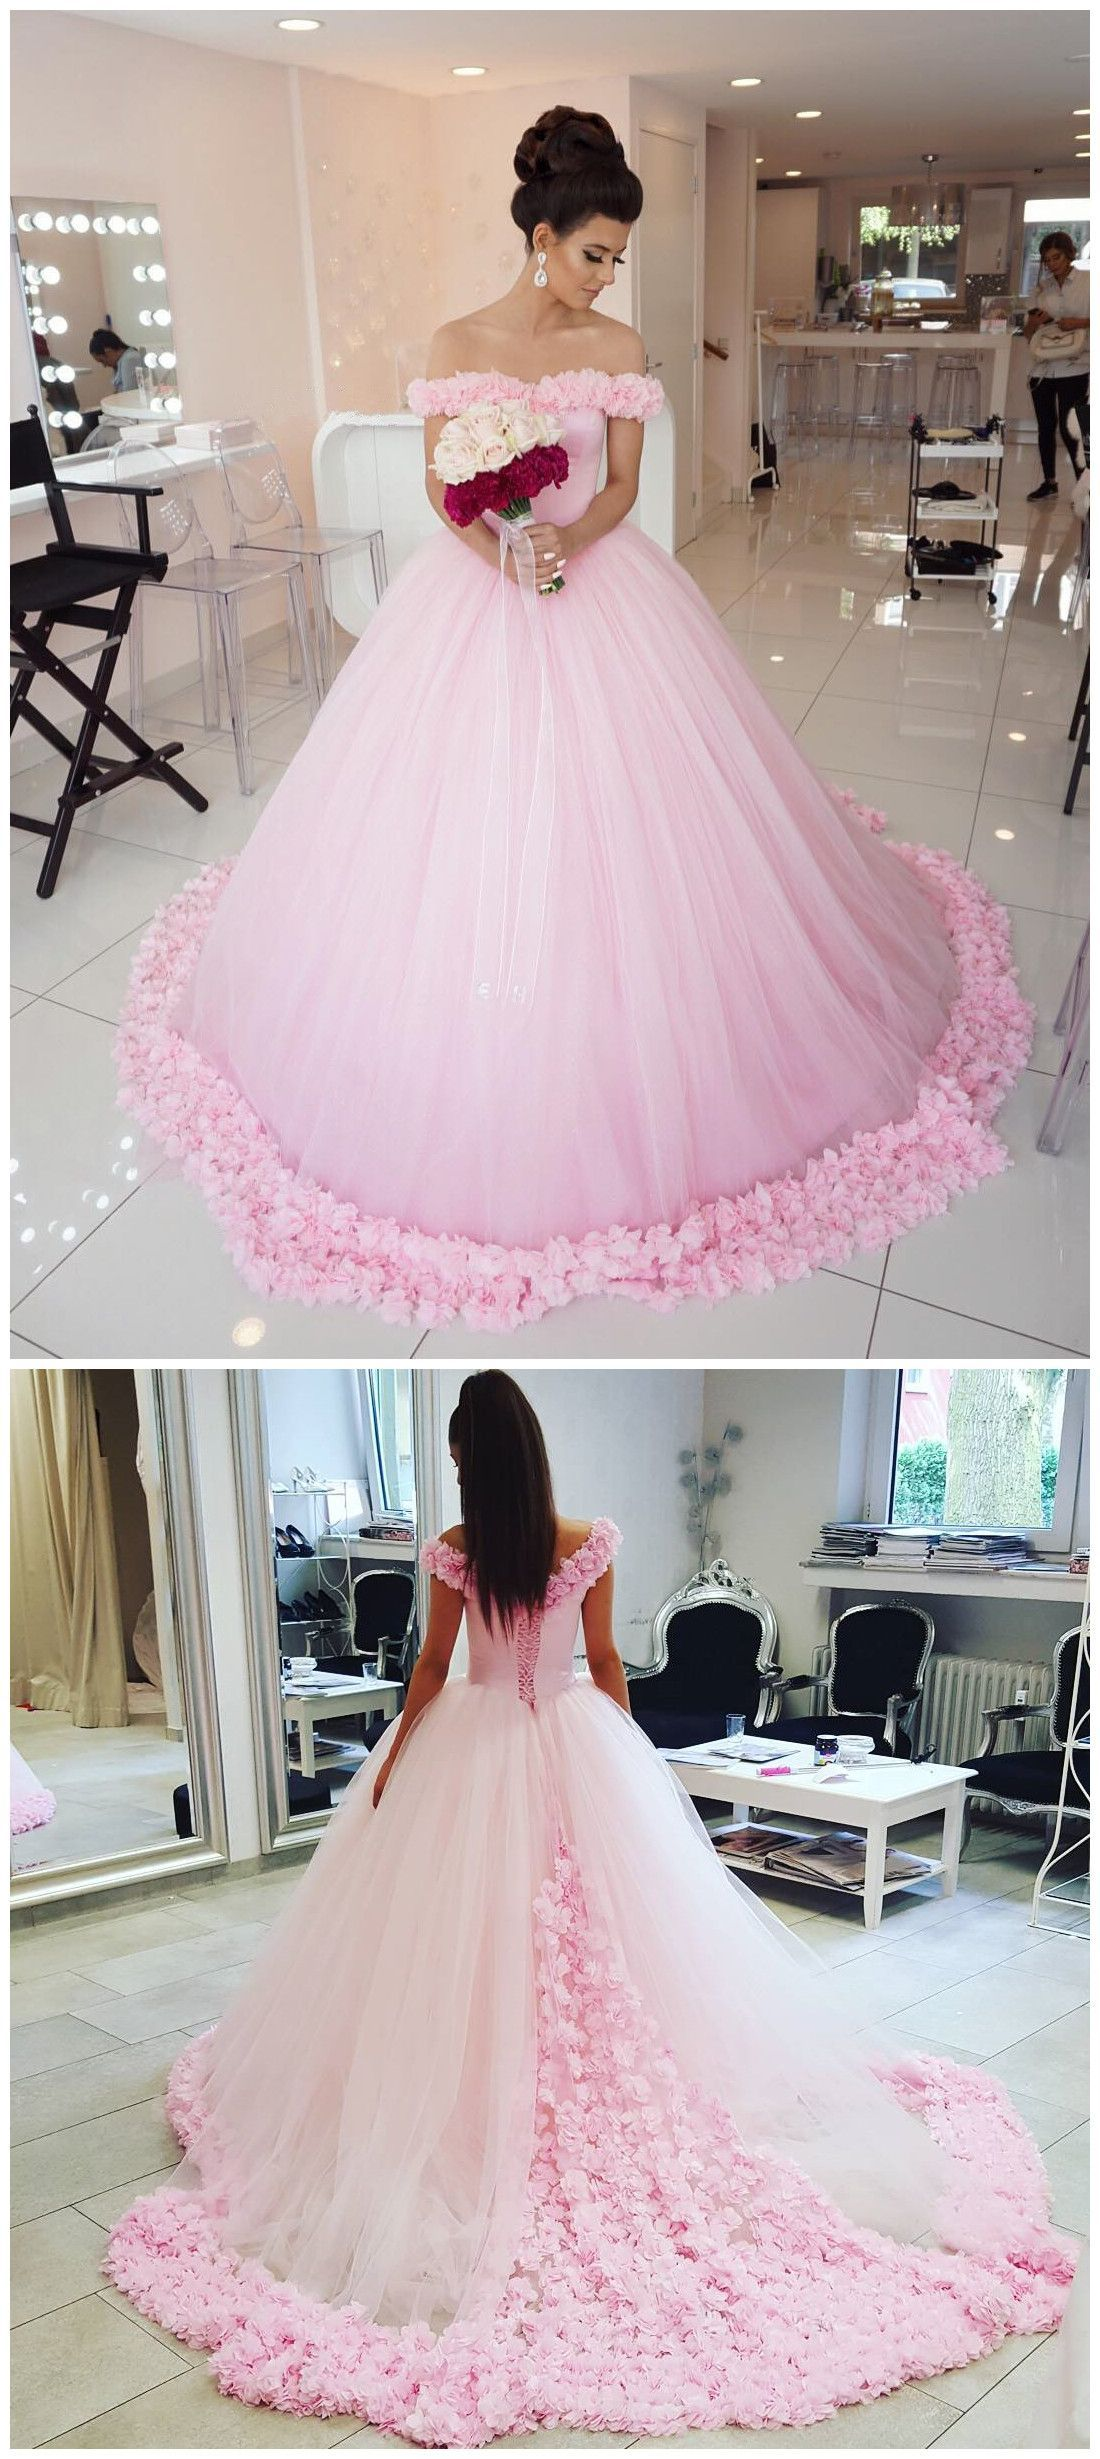 New arrival prom dressmodest prom dresssparkly flower party